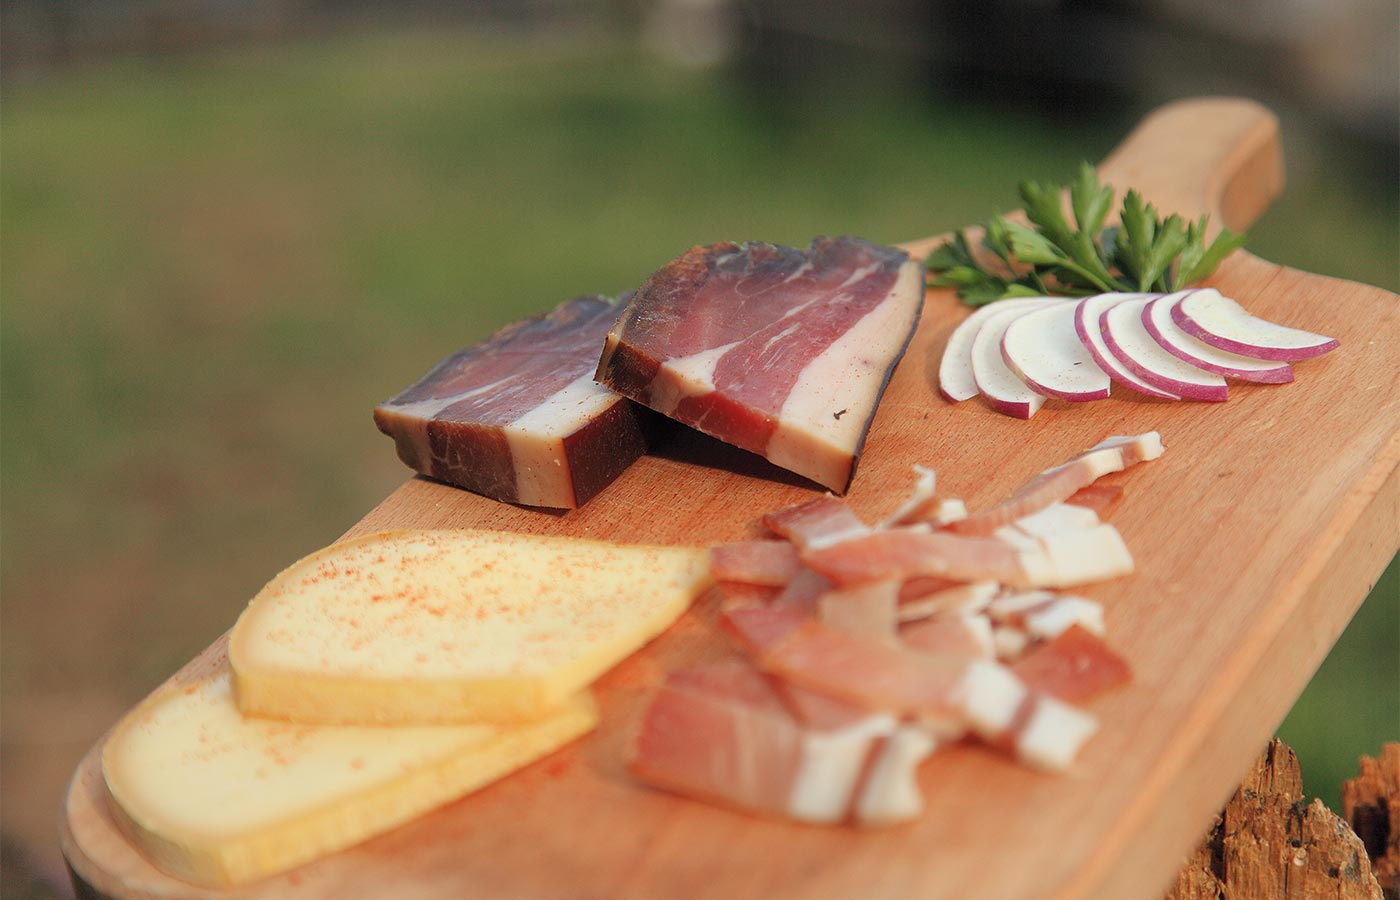 Speck cheese and radish from South Tyrol on chopping board